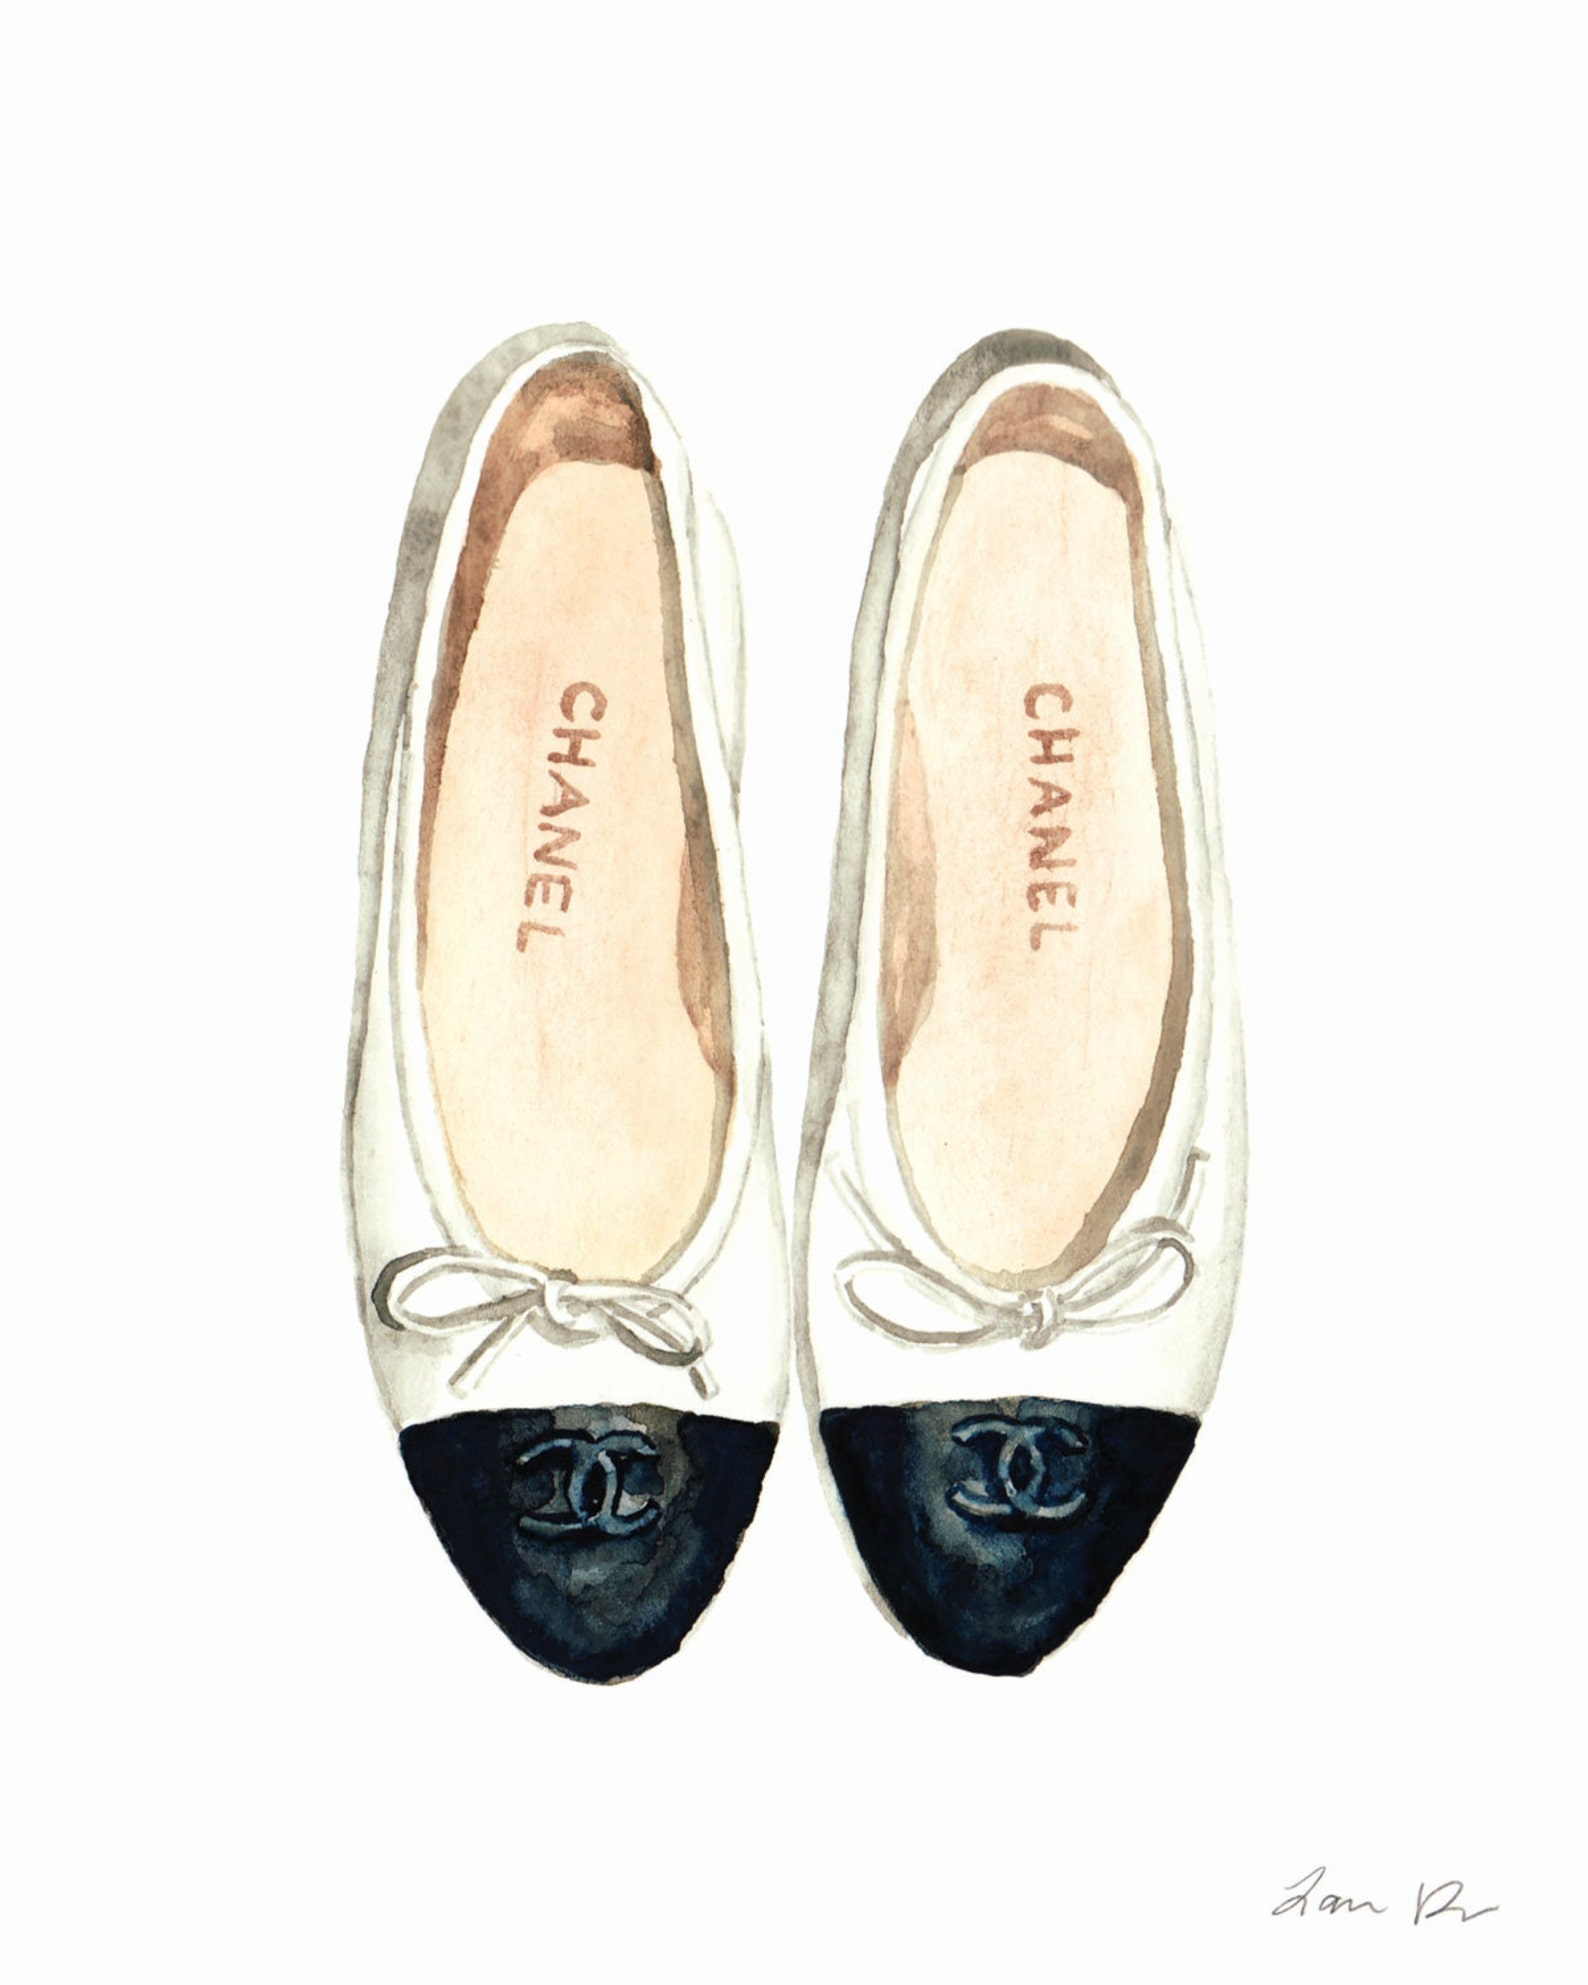 chanel ballet flats art chanel shoes print chanel shoes painting chanel ballet flats print coco chanel print coco chanel quotes